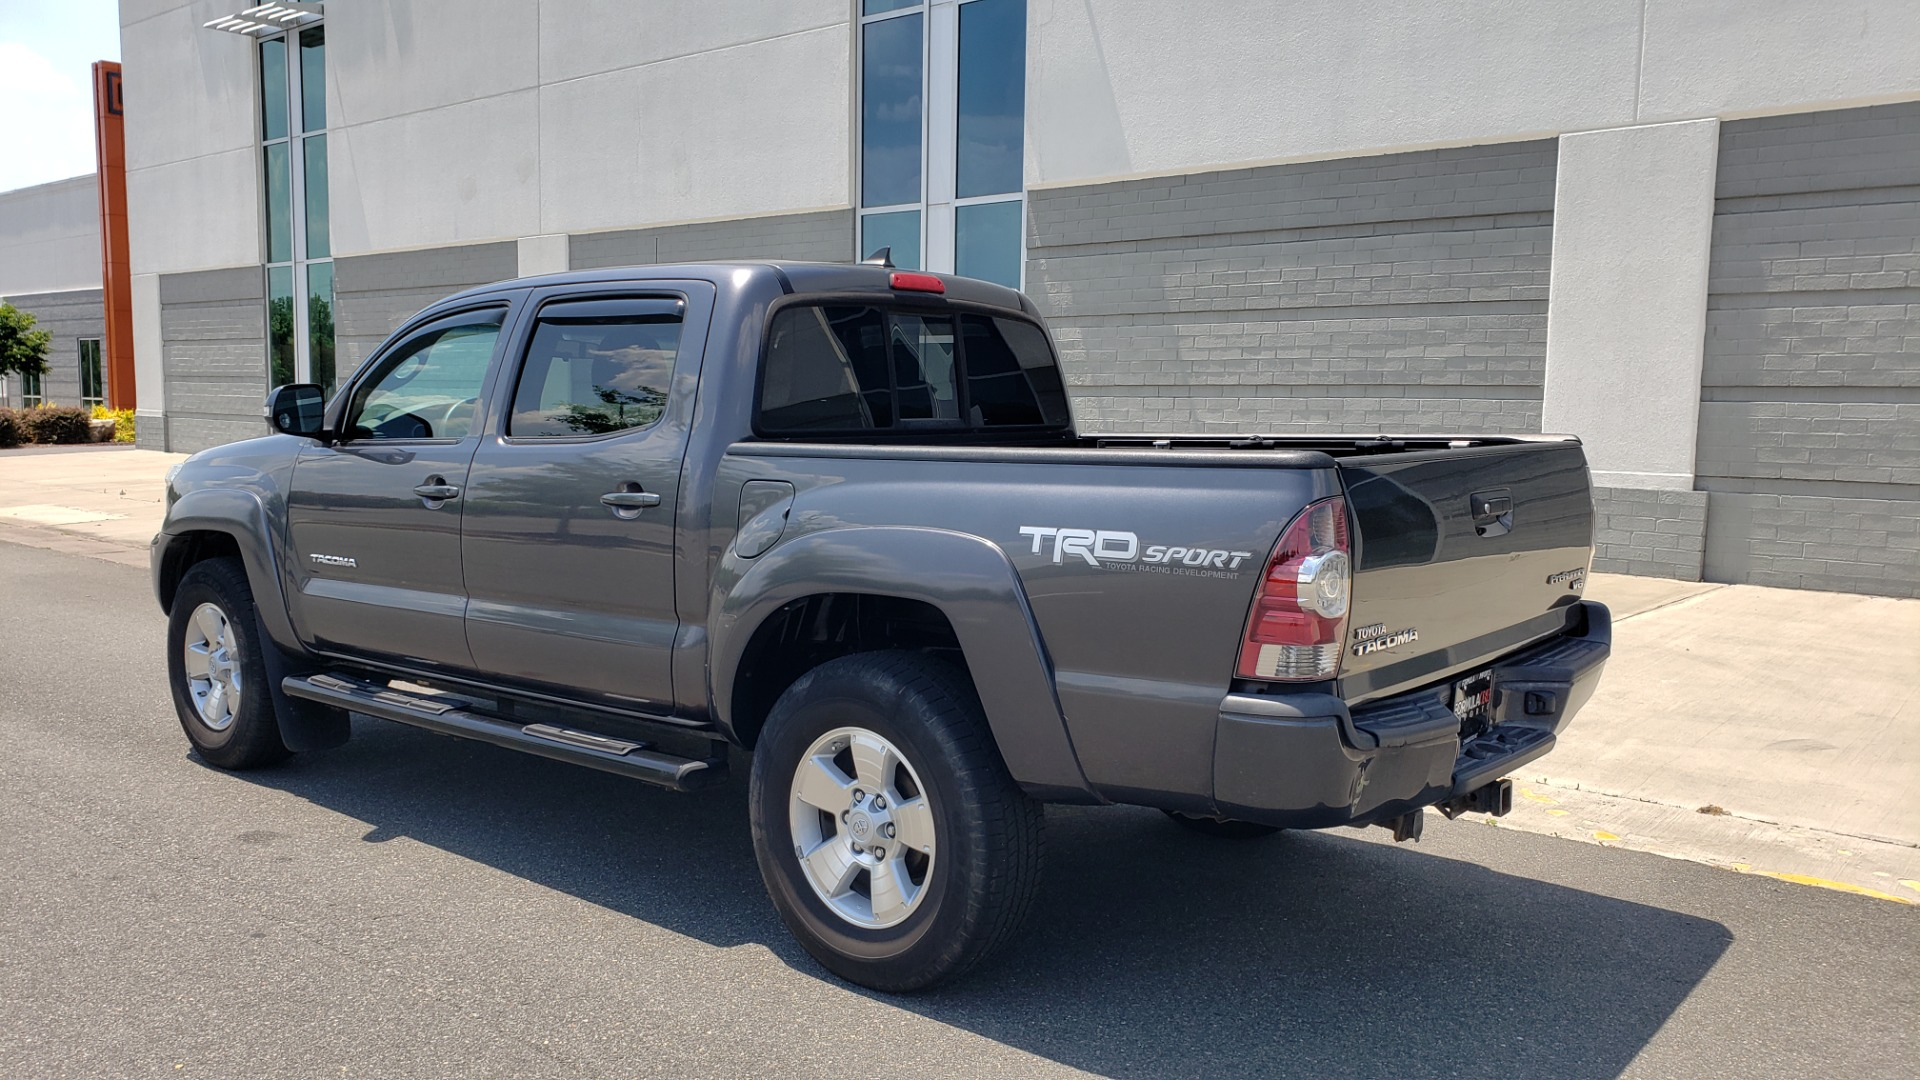 Used 2014 Toyota TACOMA PRERUNNER DOUBLECAB / TRD SPORT / V6 / 5-SPD AUTO / TOW PKG for sale $21,595 at Formula Imports in Charlotte NC 28227 3